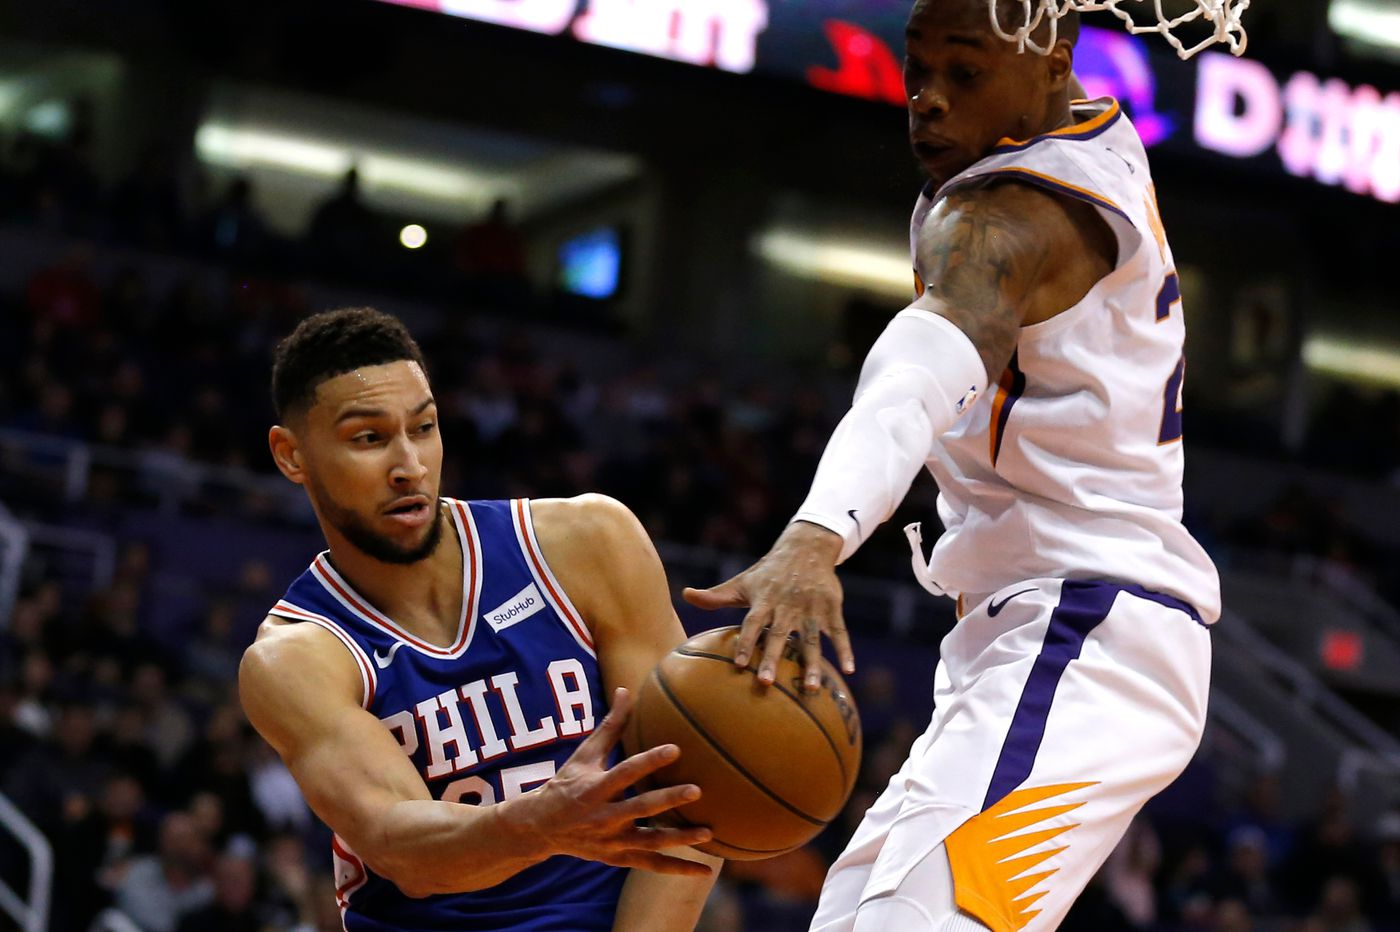 Sixers-Suns observations: Joel Embiid's worth, Ben Simmons' low-post dominance, another win over a losing team